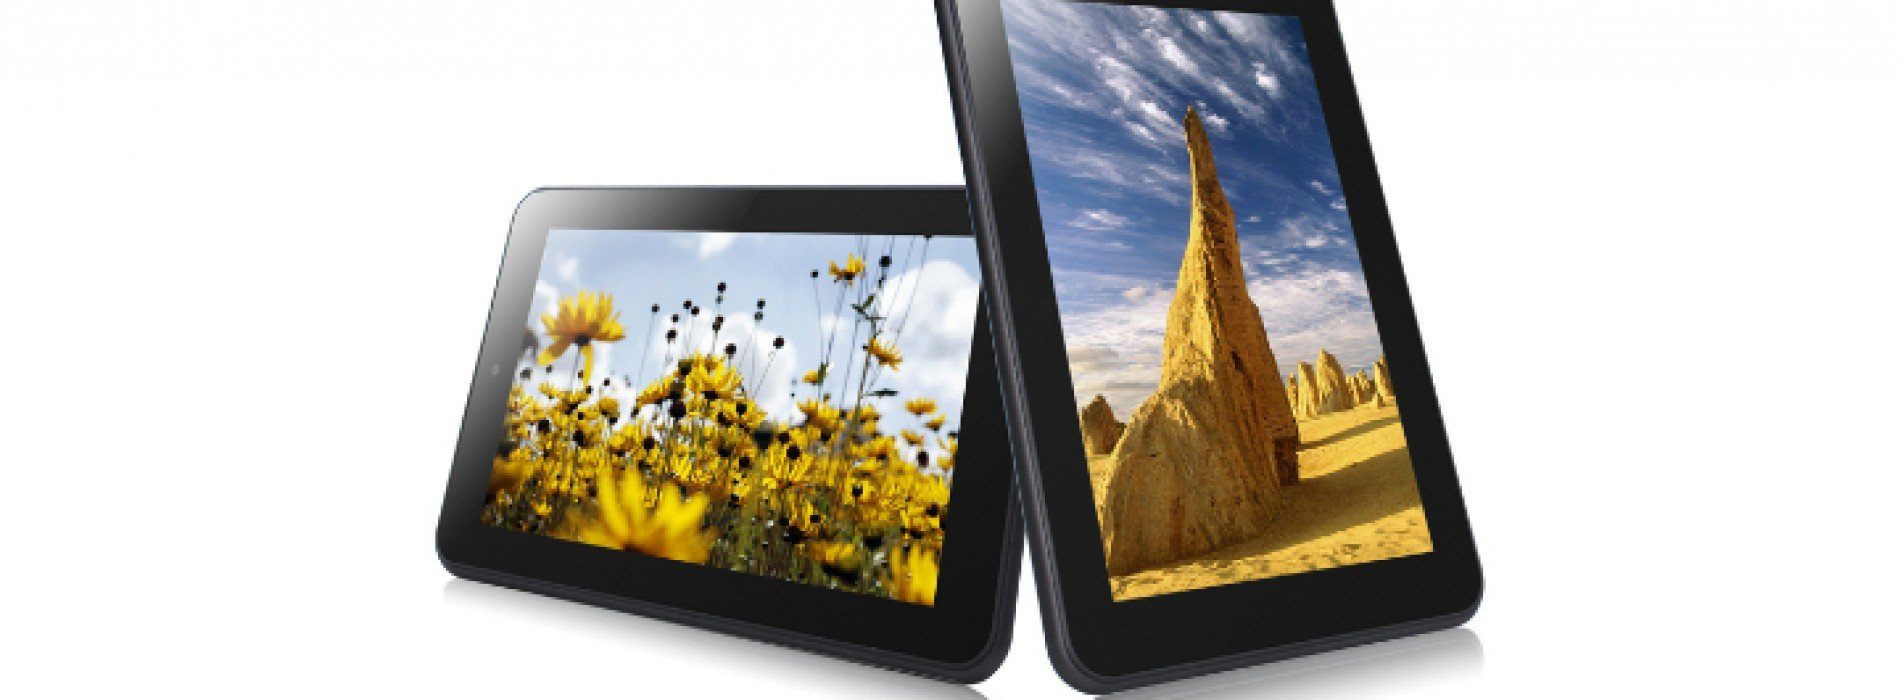 E FUN intros new Nextbook tablets with Google Play support